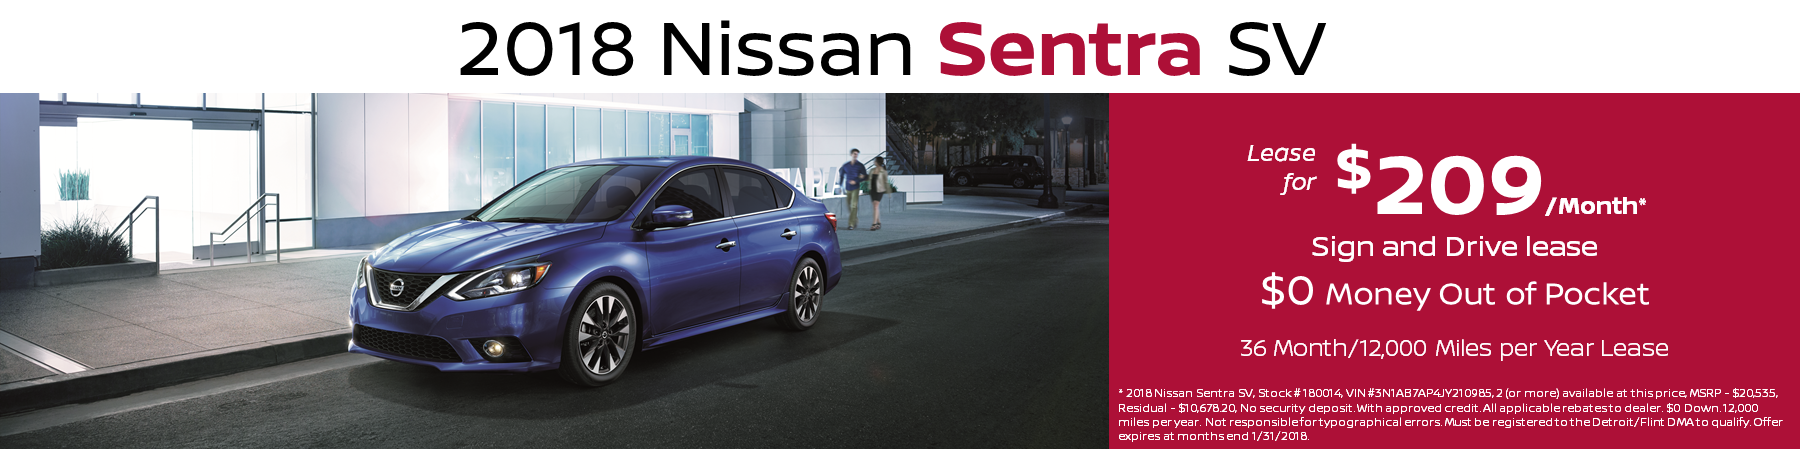 Nissan Sentra Lease Special